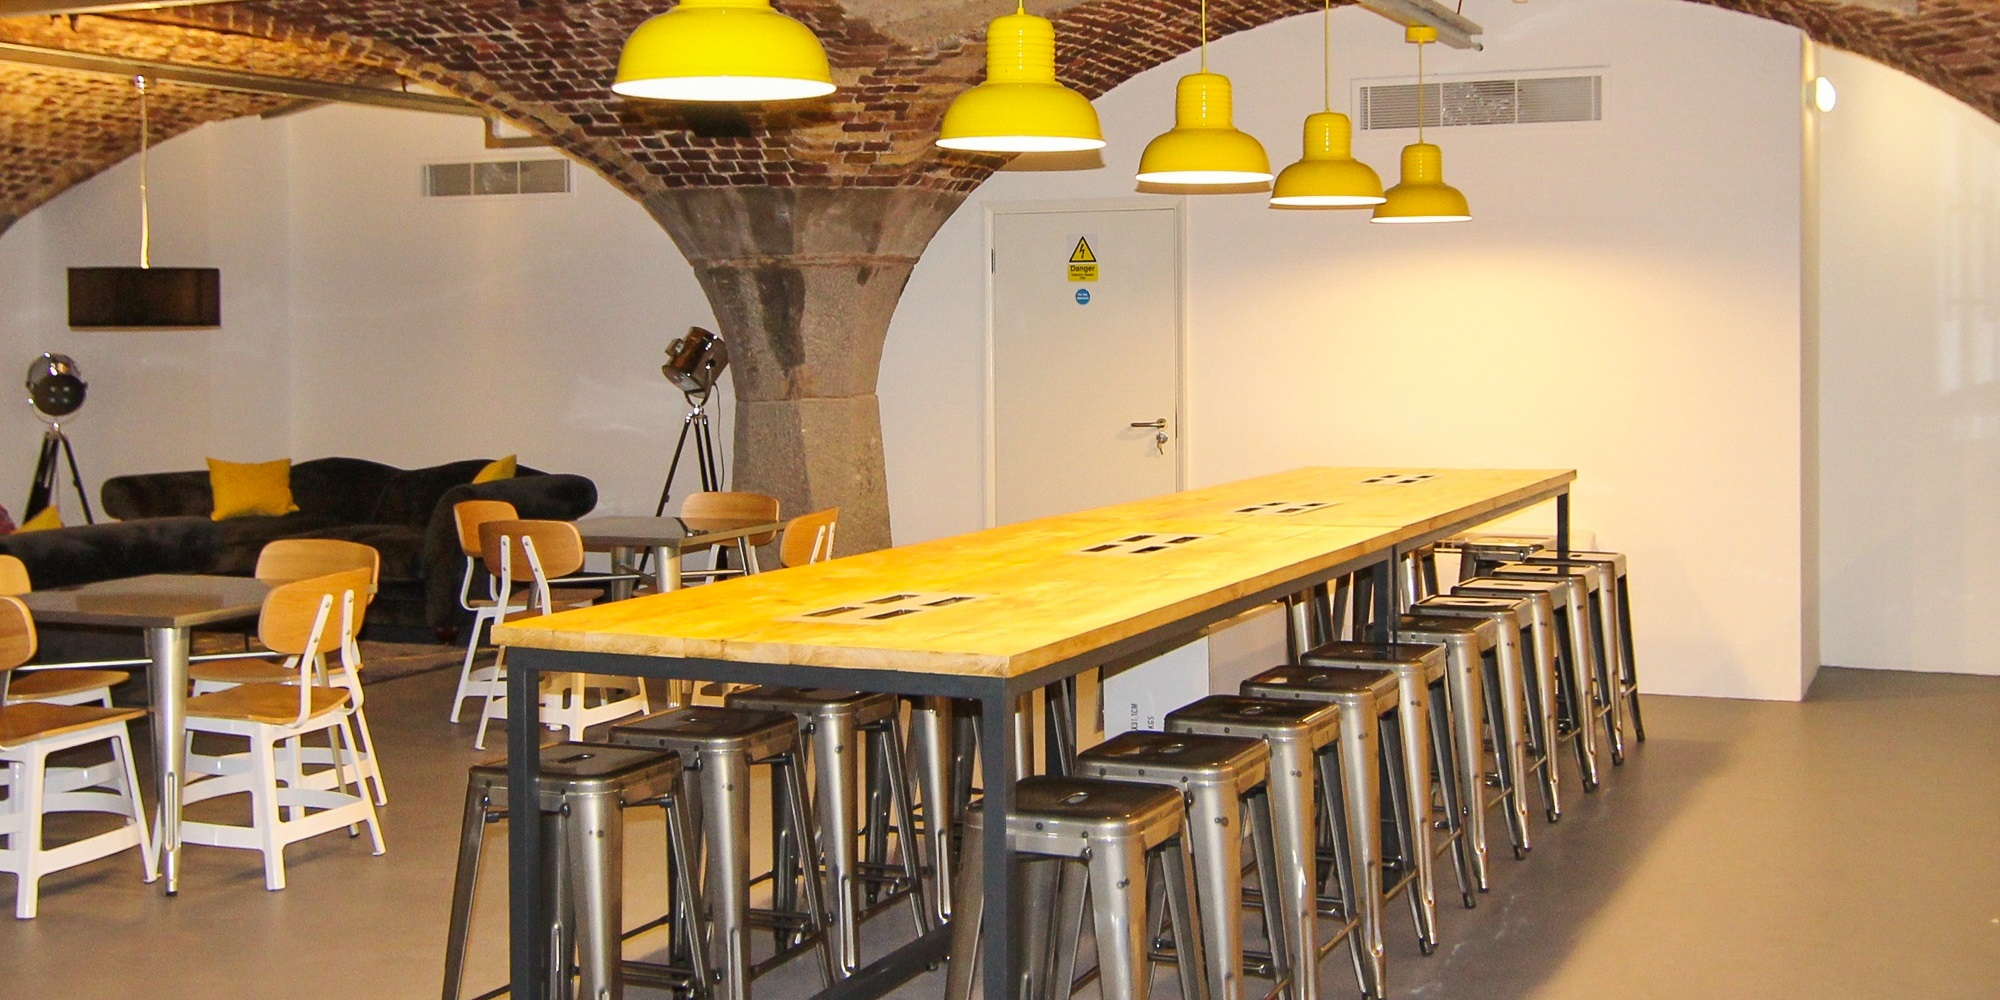 large table with metal stools and yellow dome light shades